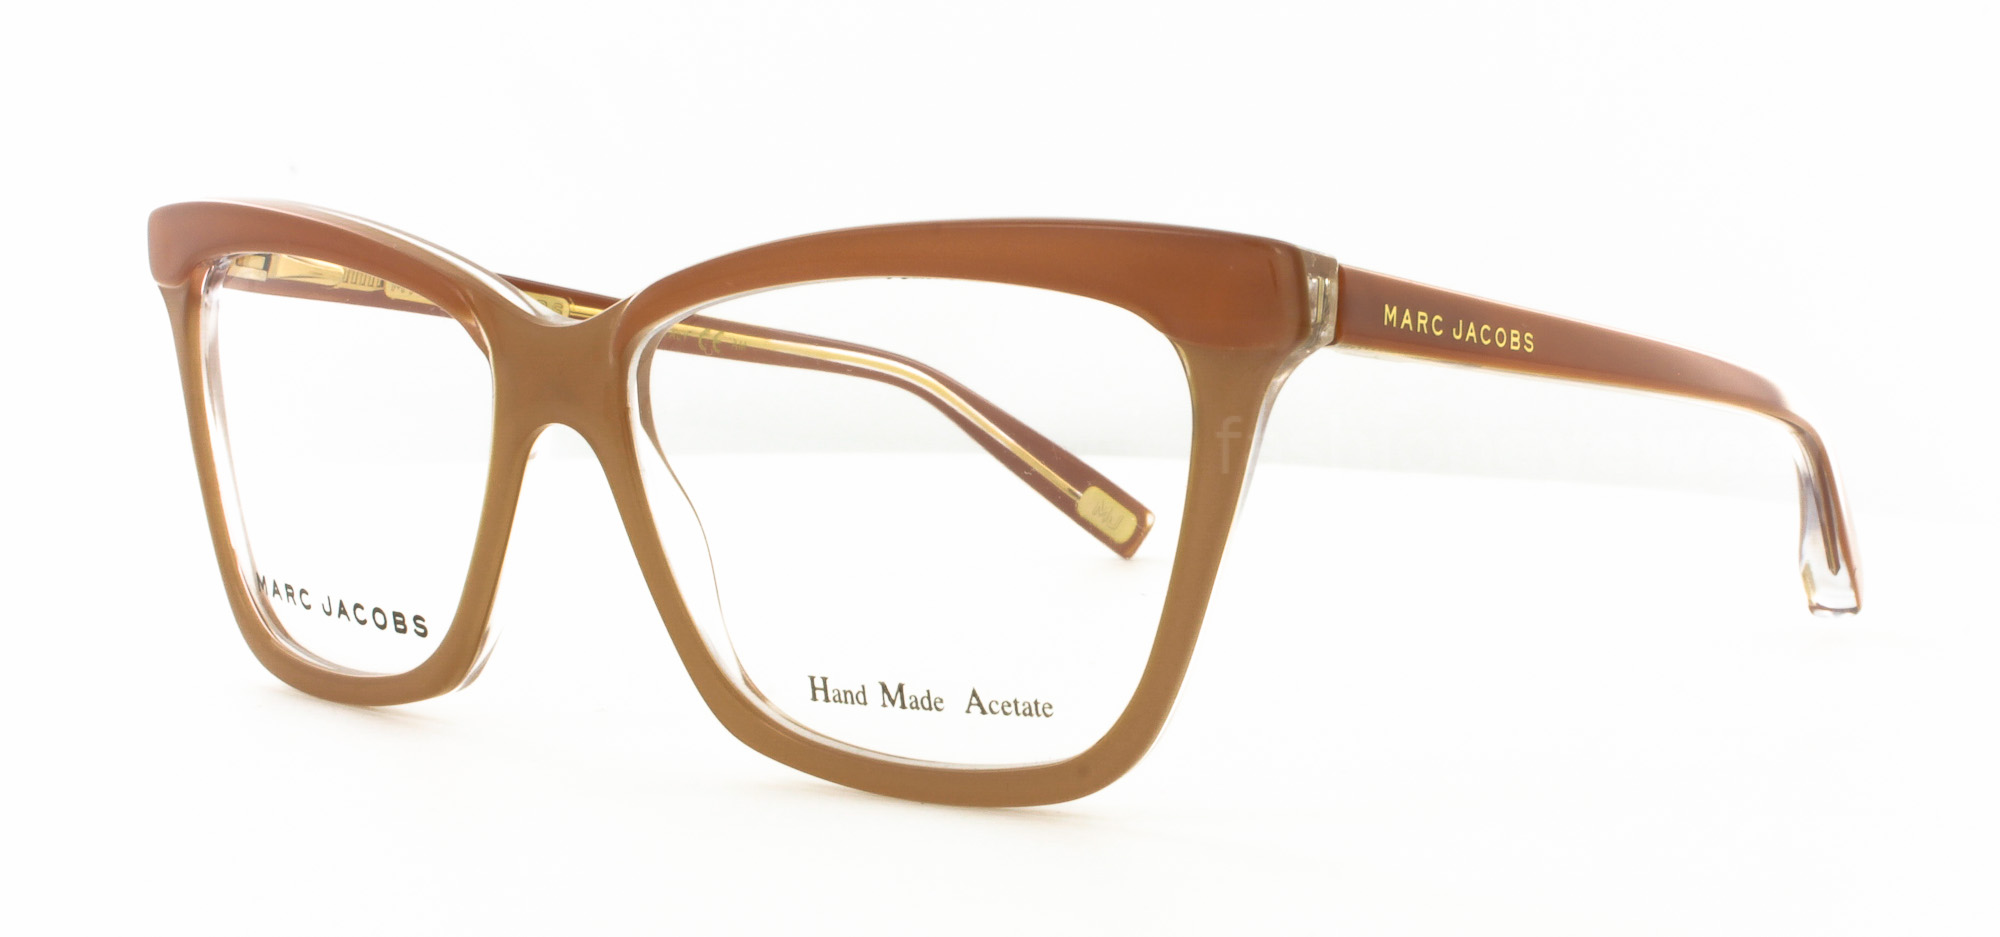 MARC JACOBS 414 HG9